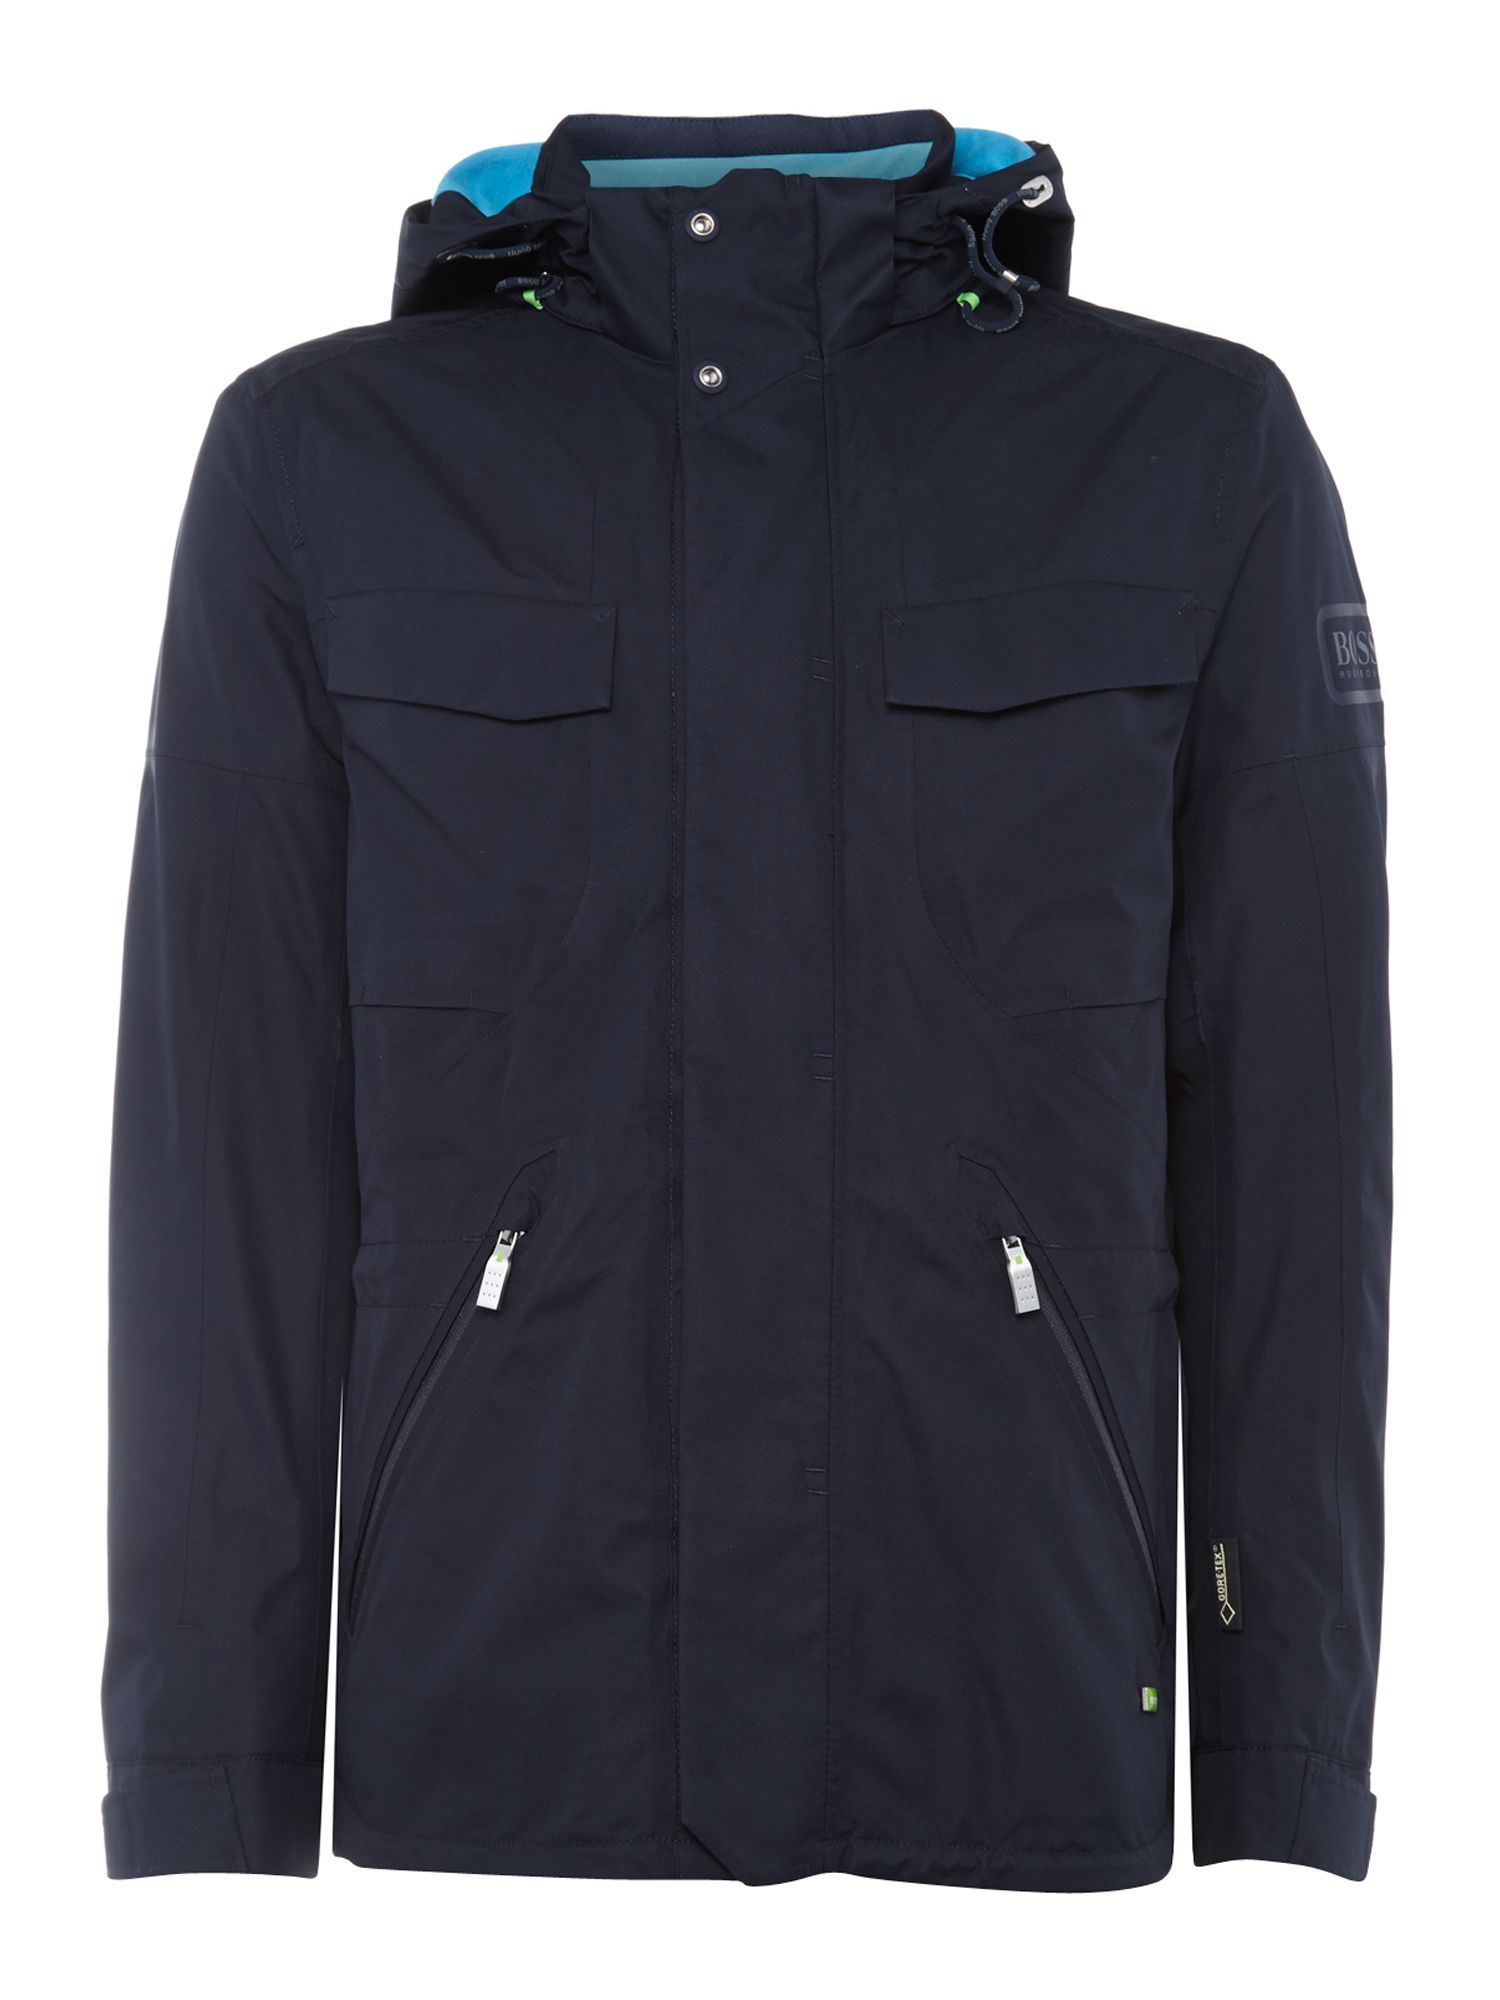 Goretex field jacket